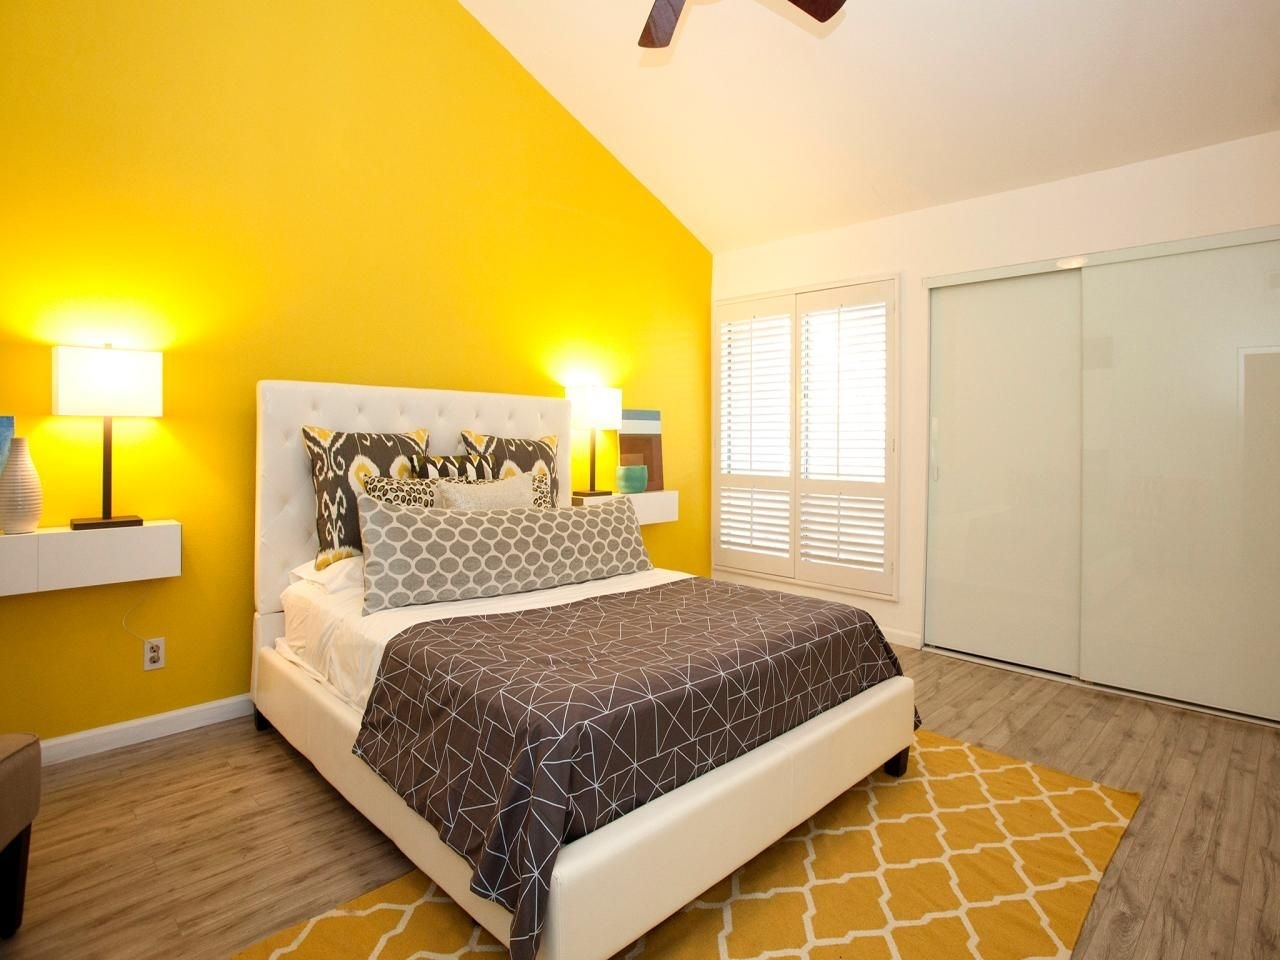 14 Living Room And Bedroom Makeovers From House Hunters Renovation Within Newest Yellow Wall Accents (Gallery 1 of 15)